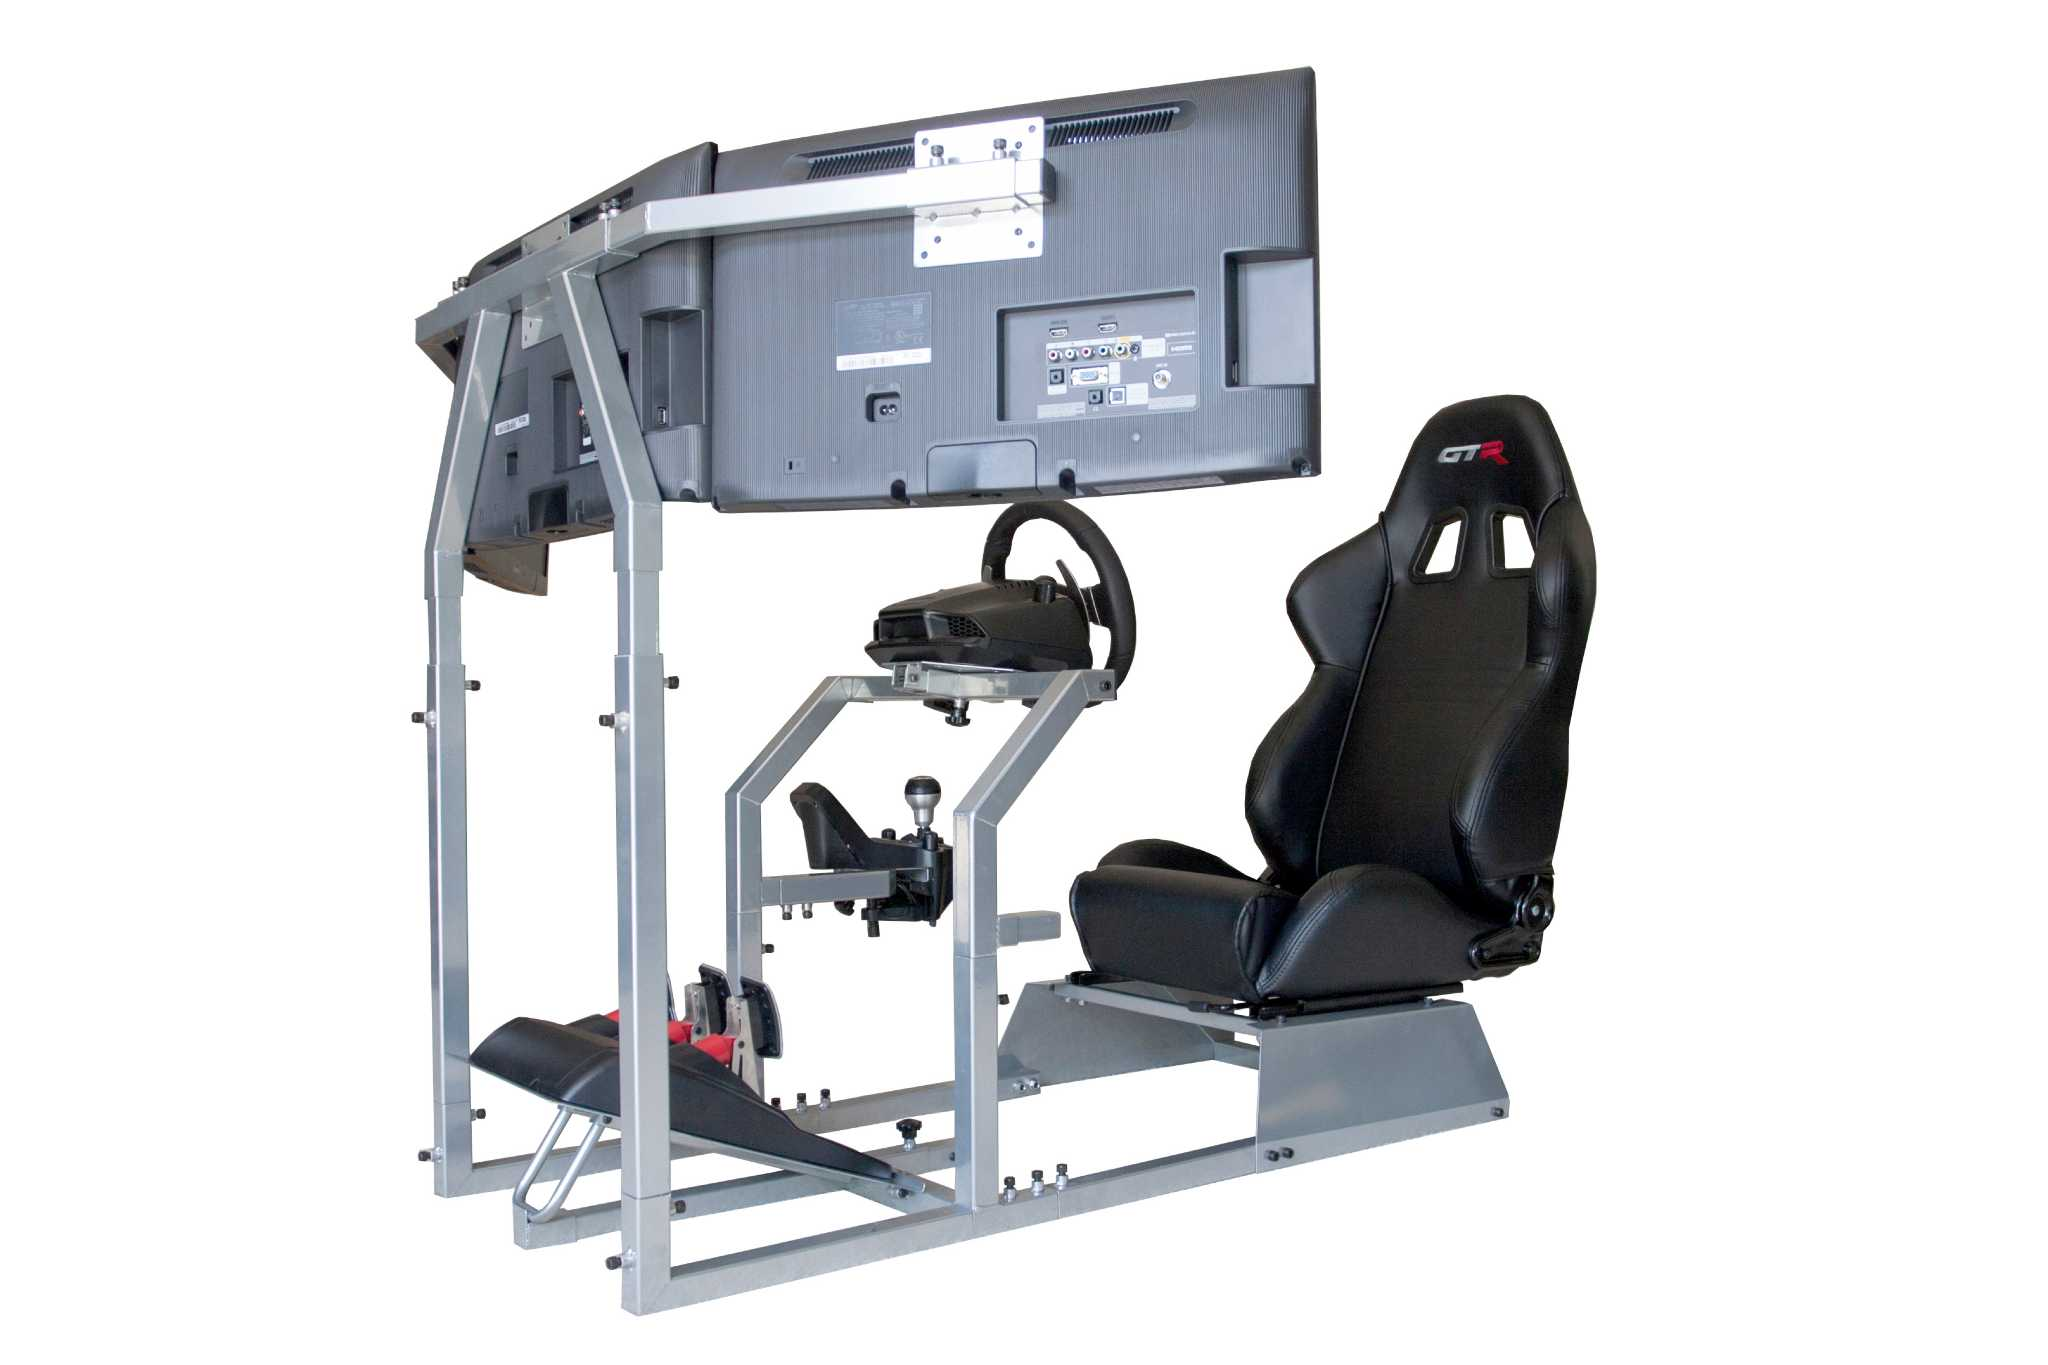 gaming chairs pc world folding office chair gifts that keep motorists cruising all year long houston